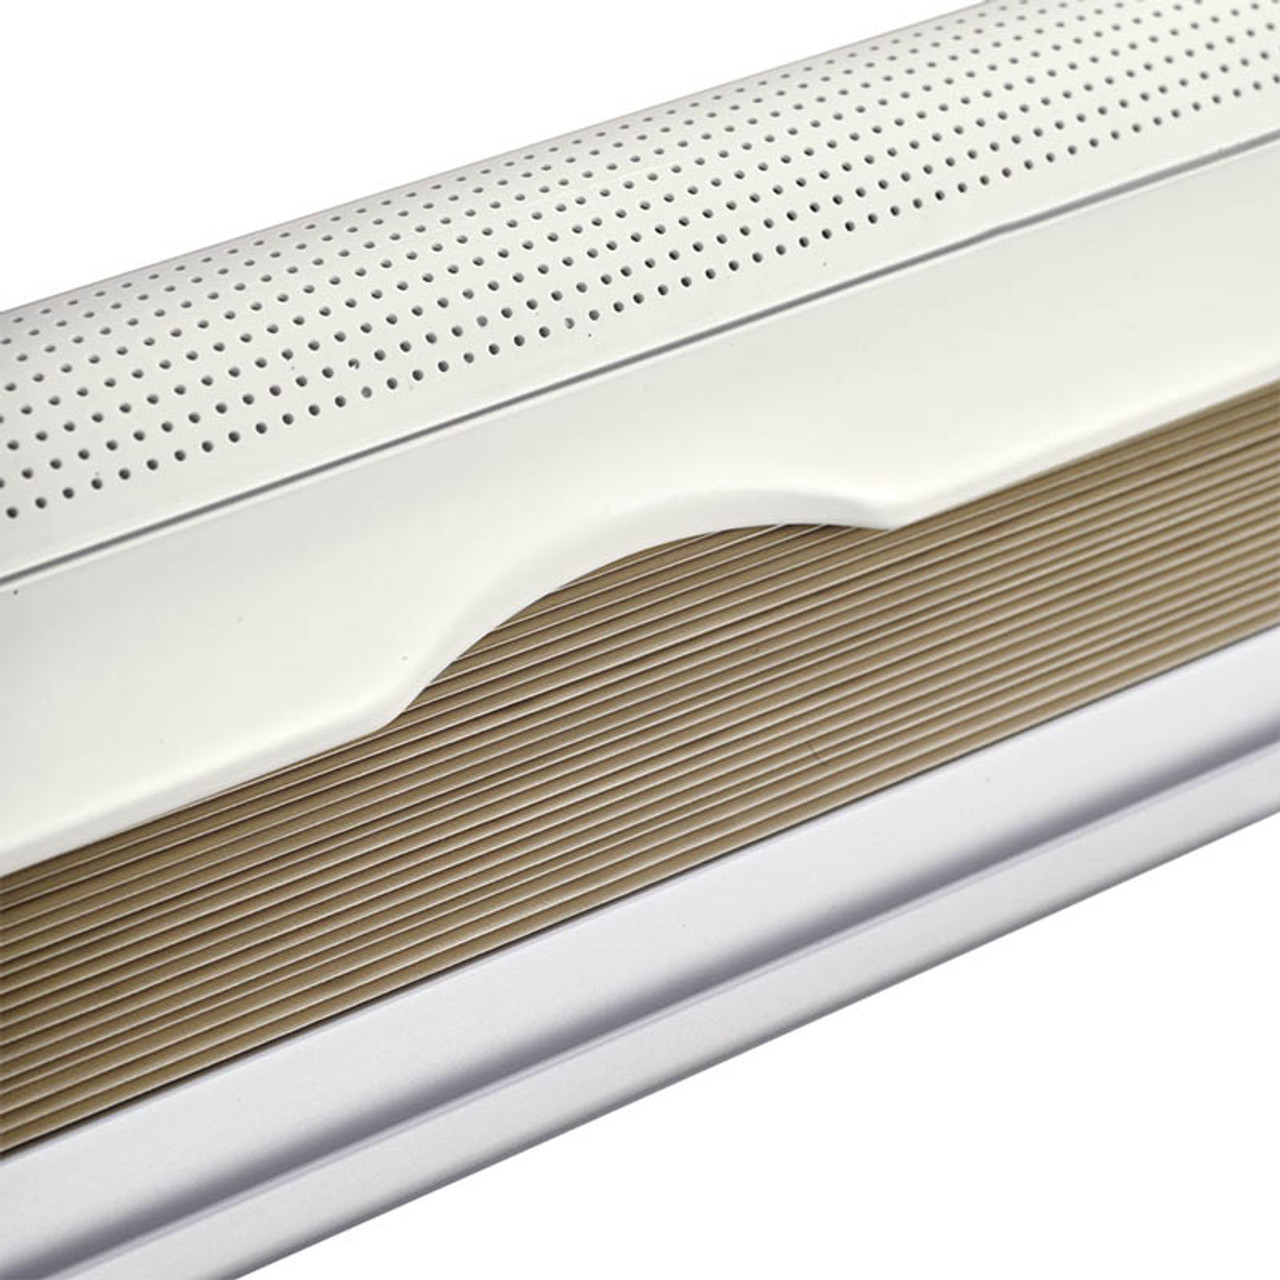 The Dometic S7P pleated blind for use in your caravan campervan or motorhome